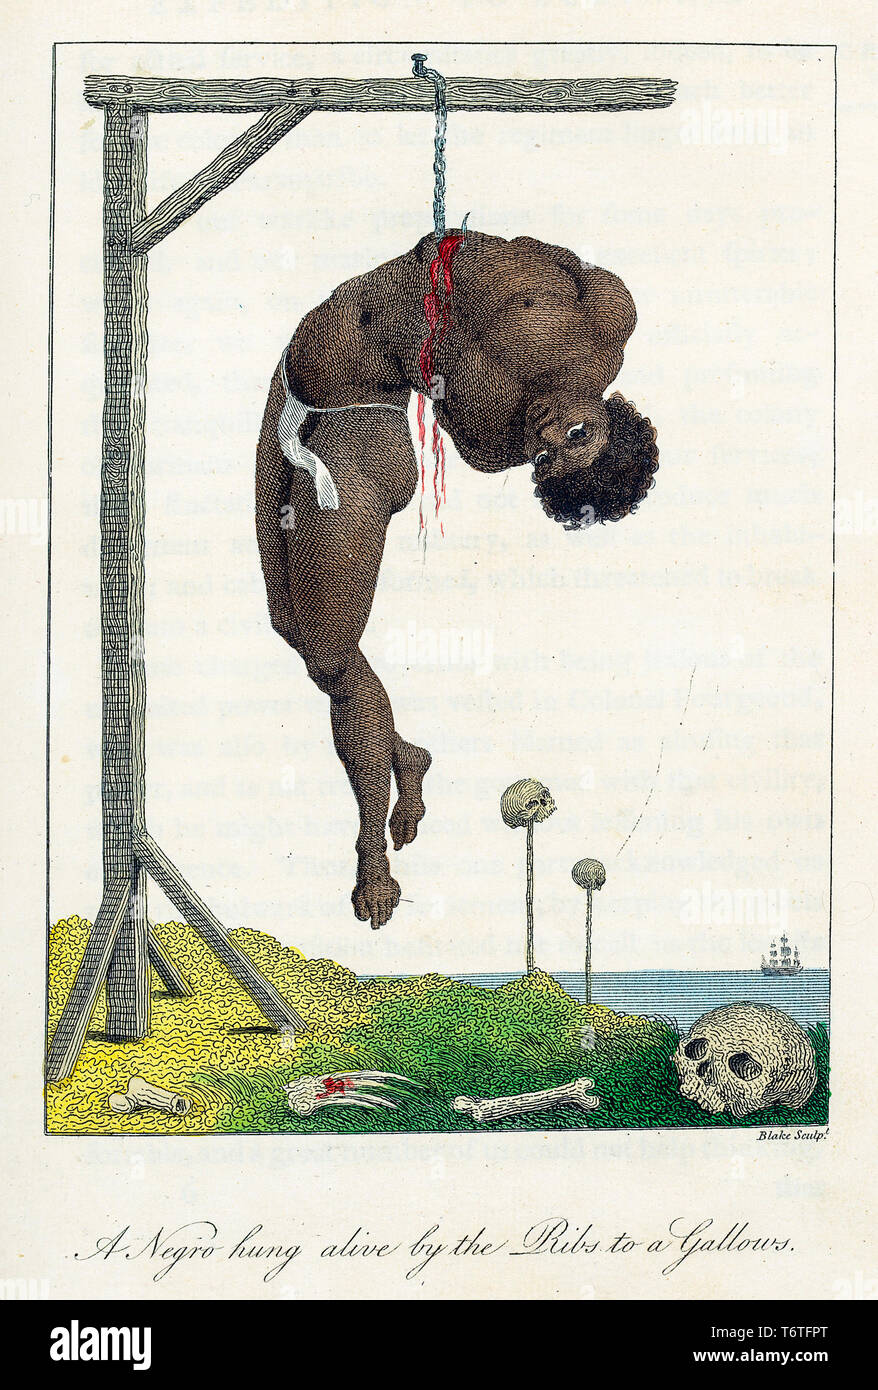 William Blake, after John Gabriel Stedman, Slave trade engraving, 'A Negro Hung Alive by the Ribs to a Gallows', hand coloured aquatint print, 1796 - Stock Image